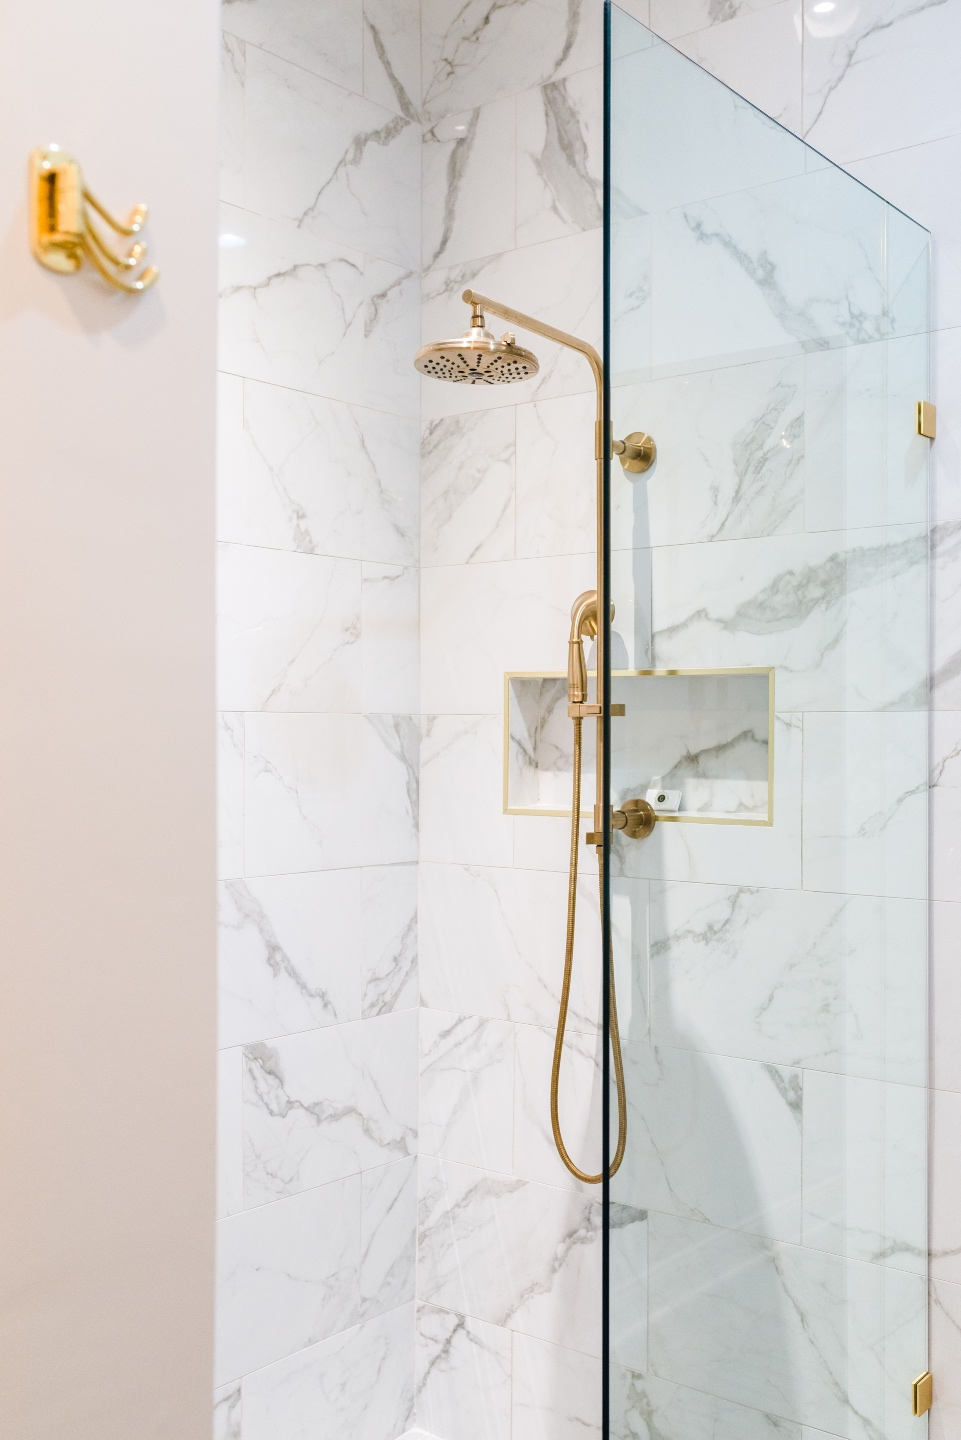 Places to Stay: The Colonial Inn in Hillsborough NC - I'm Fixin' To - @imfixintoblog |The Colonial Inn Hillsborough NC by popular NC travel blog, I'm Fixin' To: image of a walk-in shower with marble tiles and gold shower head.